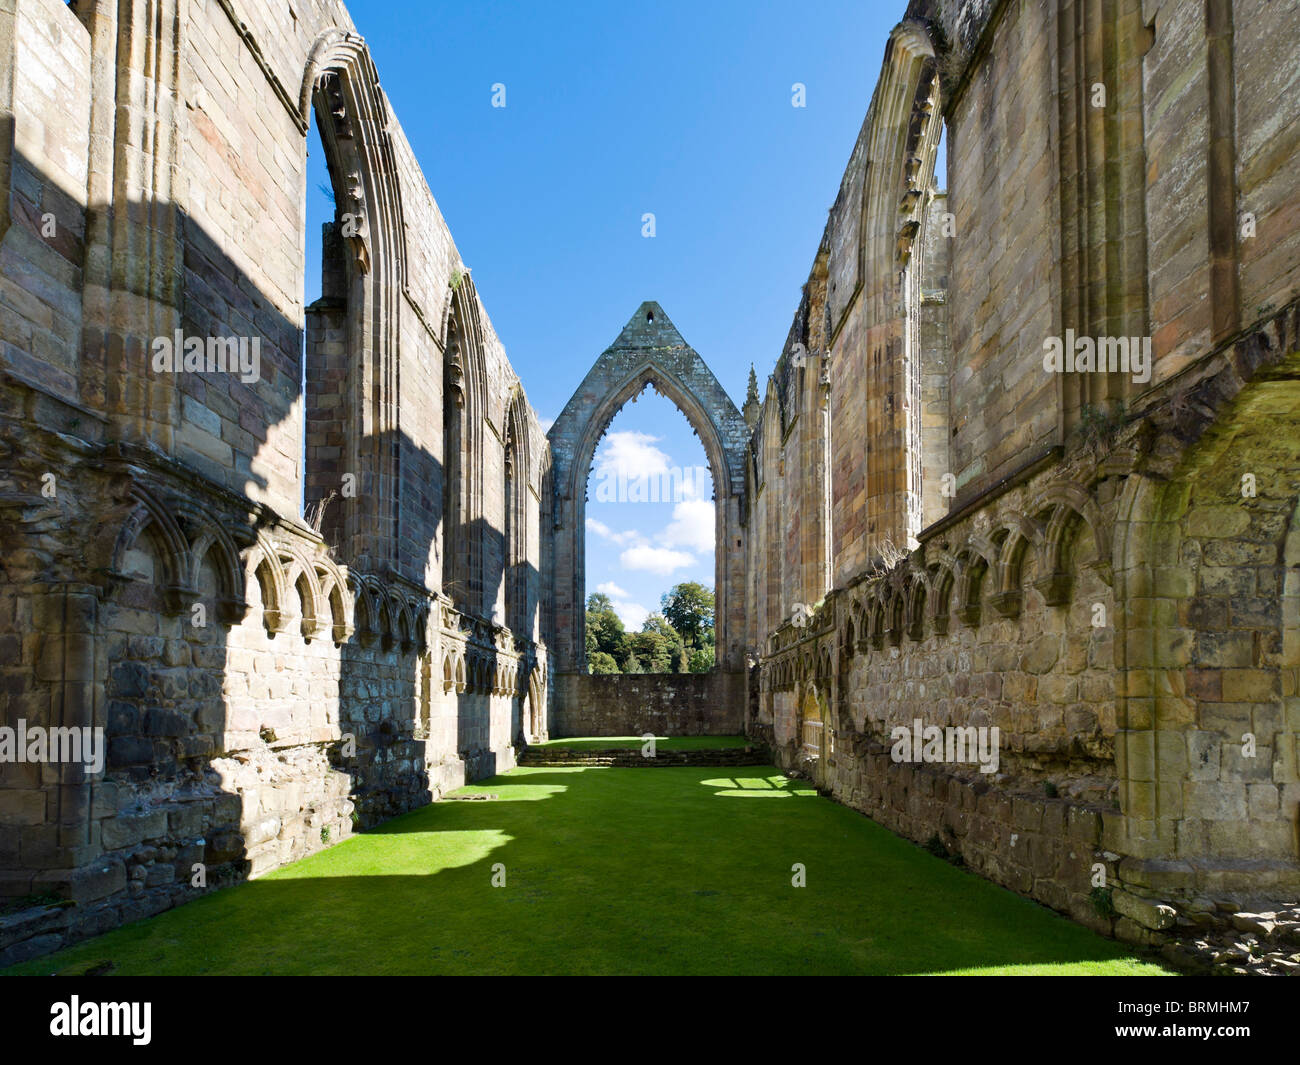 Interior of the ruins of Bolton Priory, Bolton Abbey, Wharfedale, Yorkshire Dales, North Yorkshire, England, UK - Stock Image